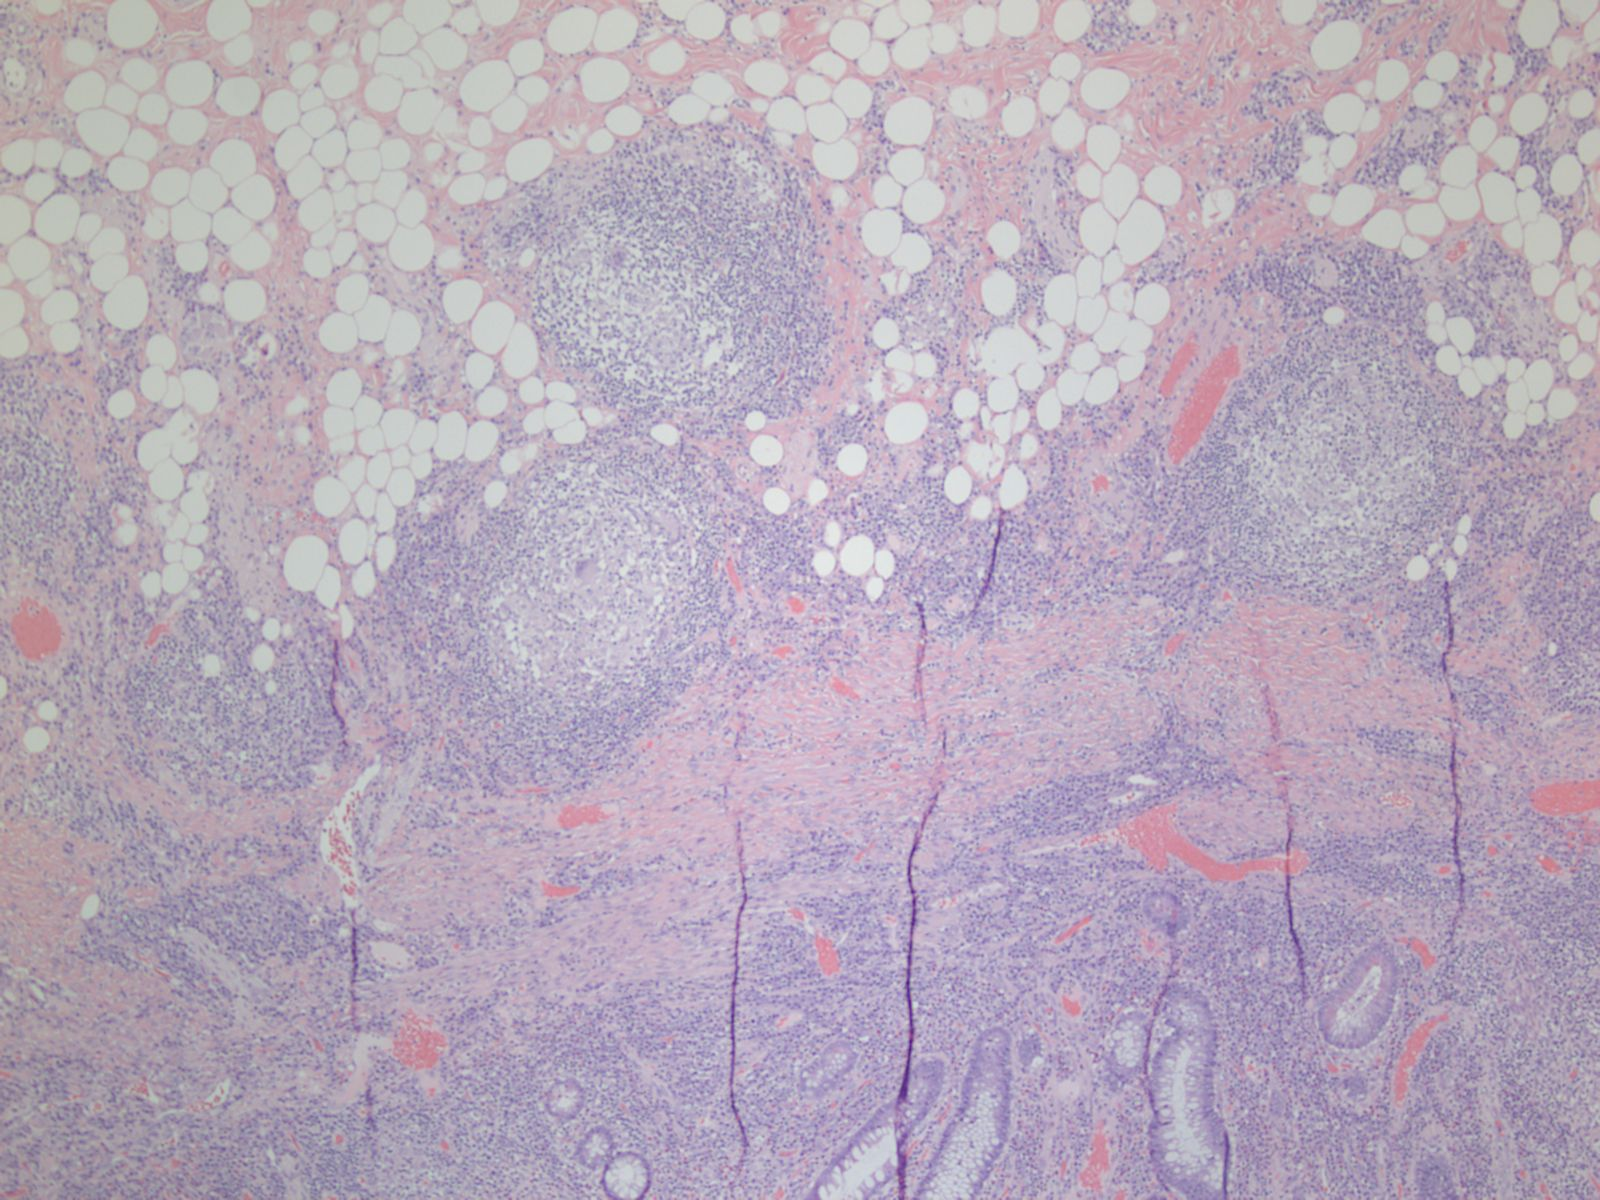 Non-caseating Granuloma in Colon Specimen